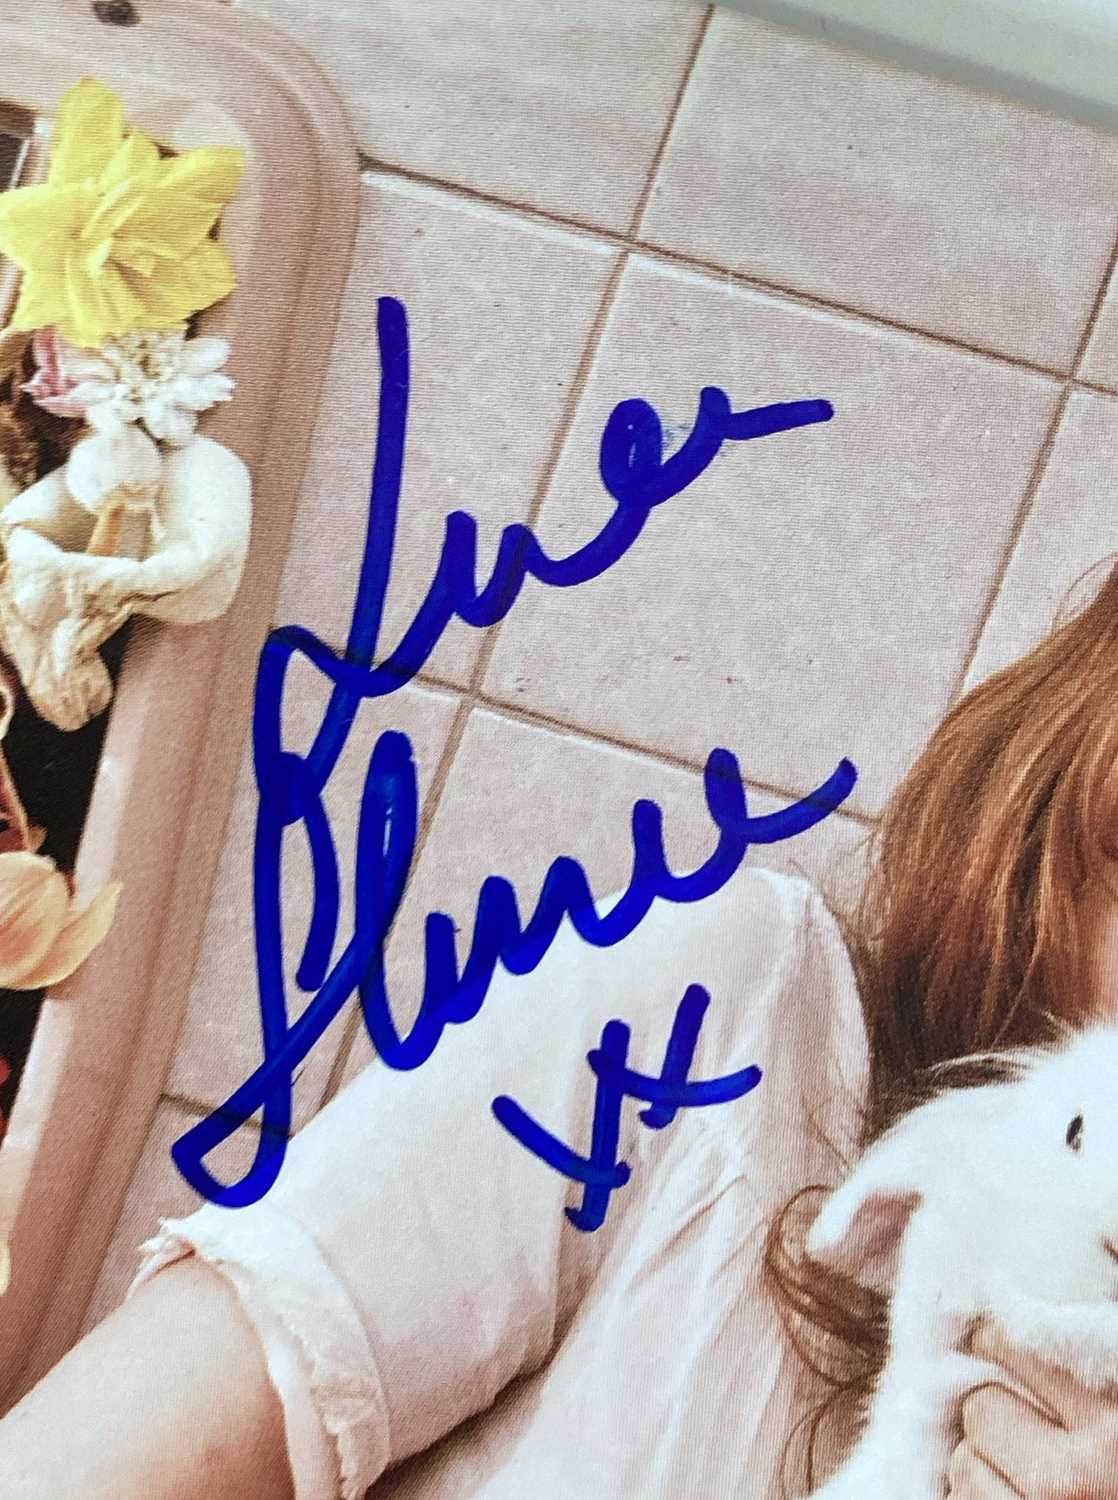 FLORENCE AND THE MACHINE SIGNED ITEMS. - Image 3 of 10